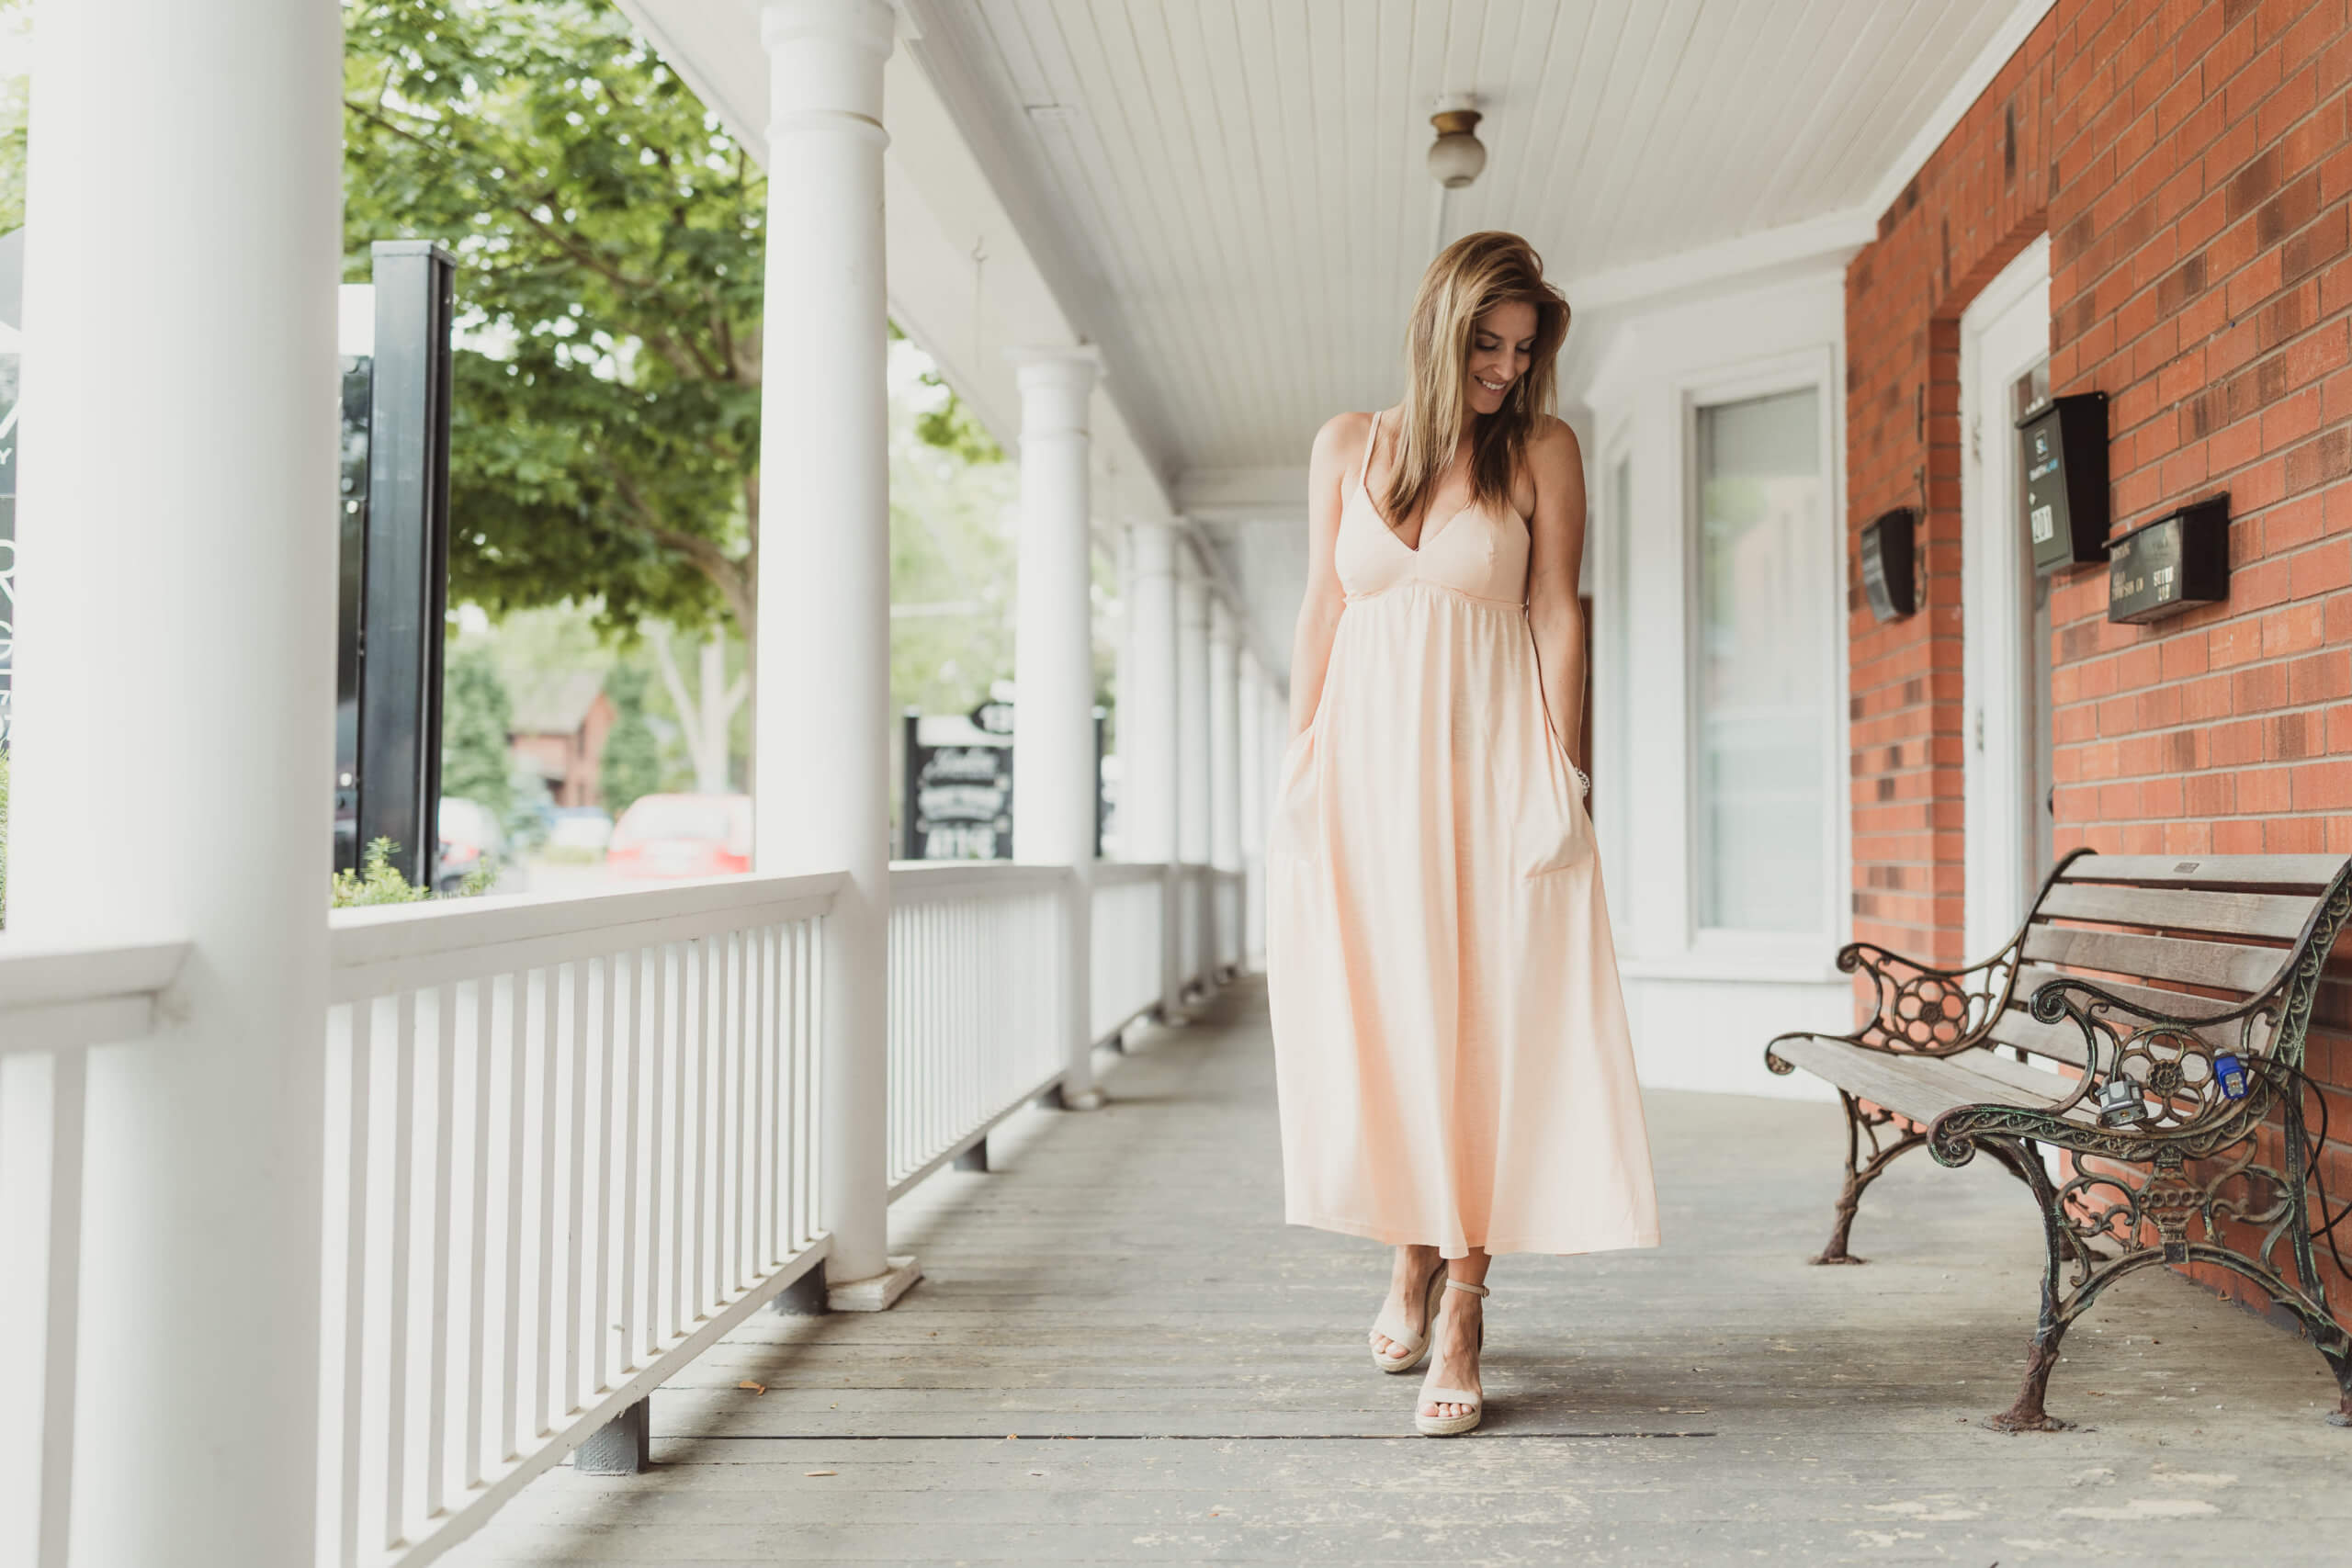 Turquoise Boutique; Turquoise Boutique Whitby; Downtown Whitby shopping; summer maxi dress